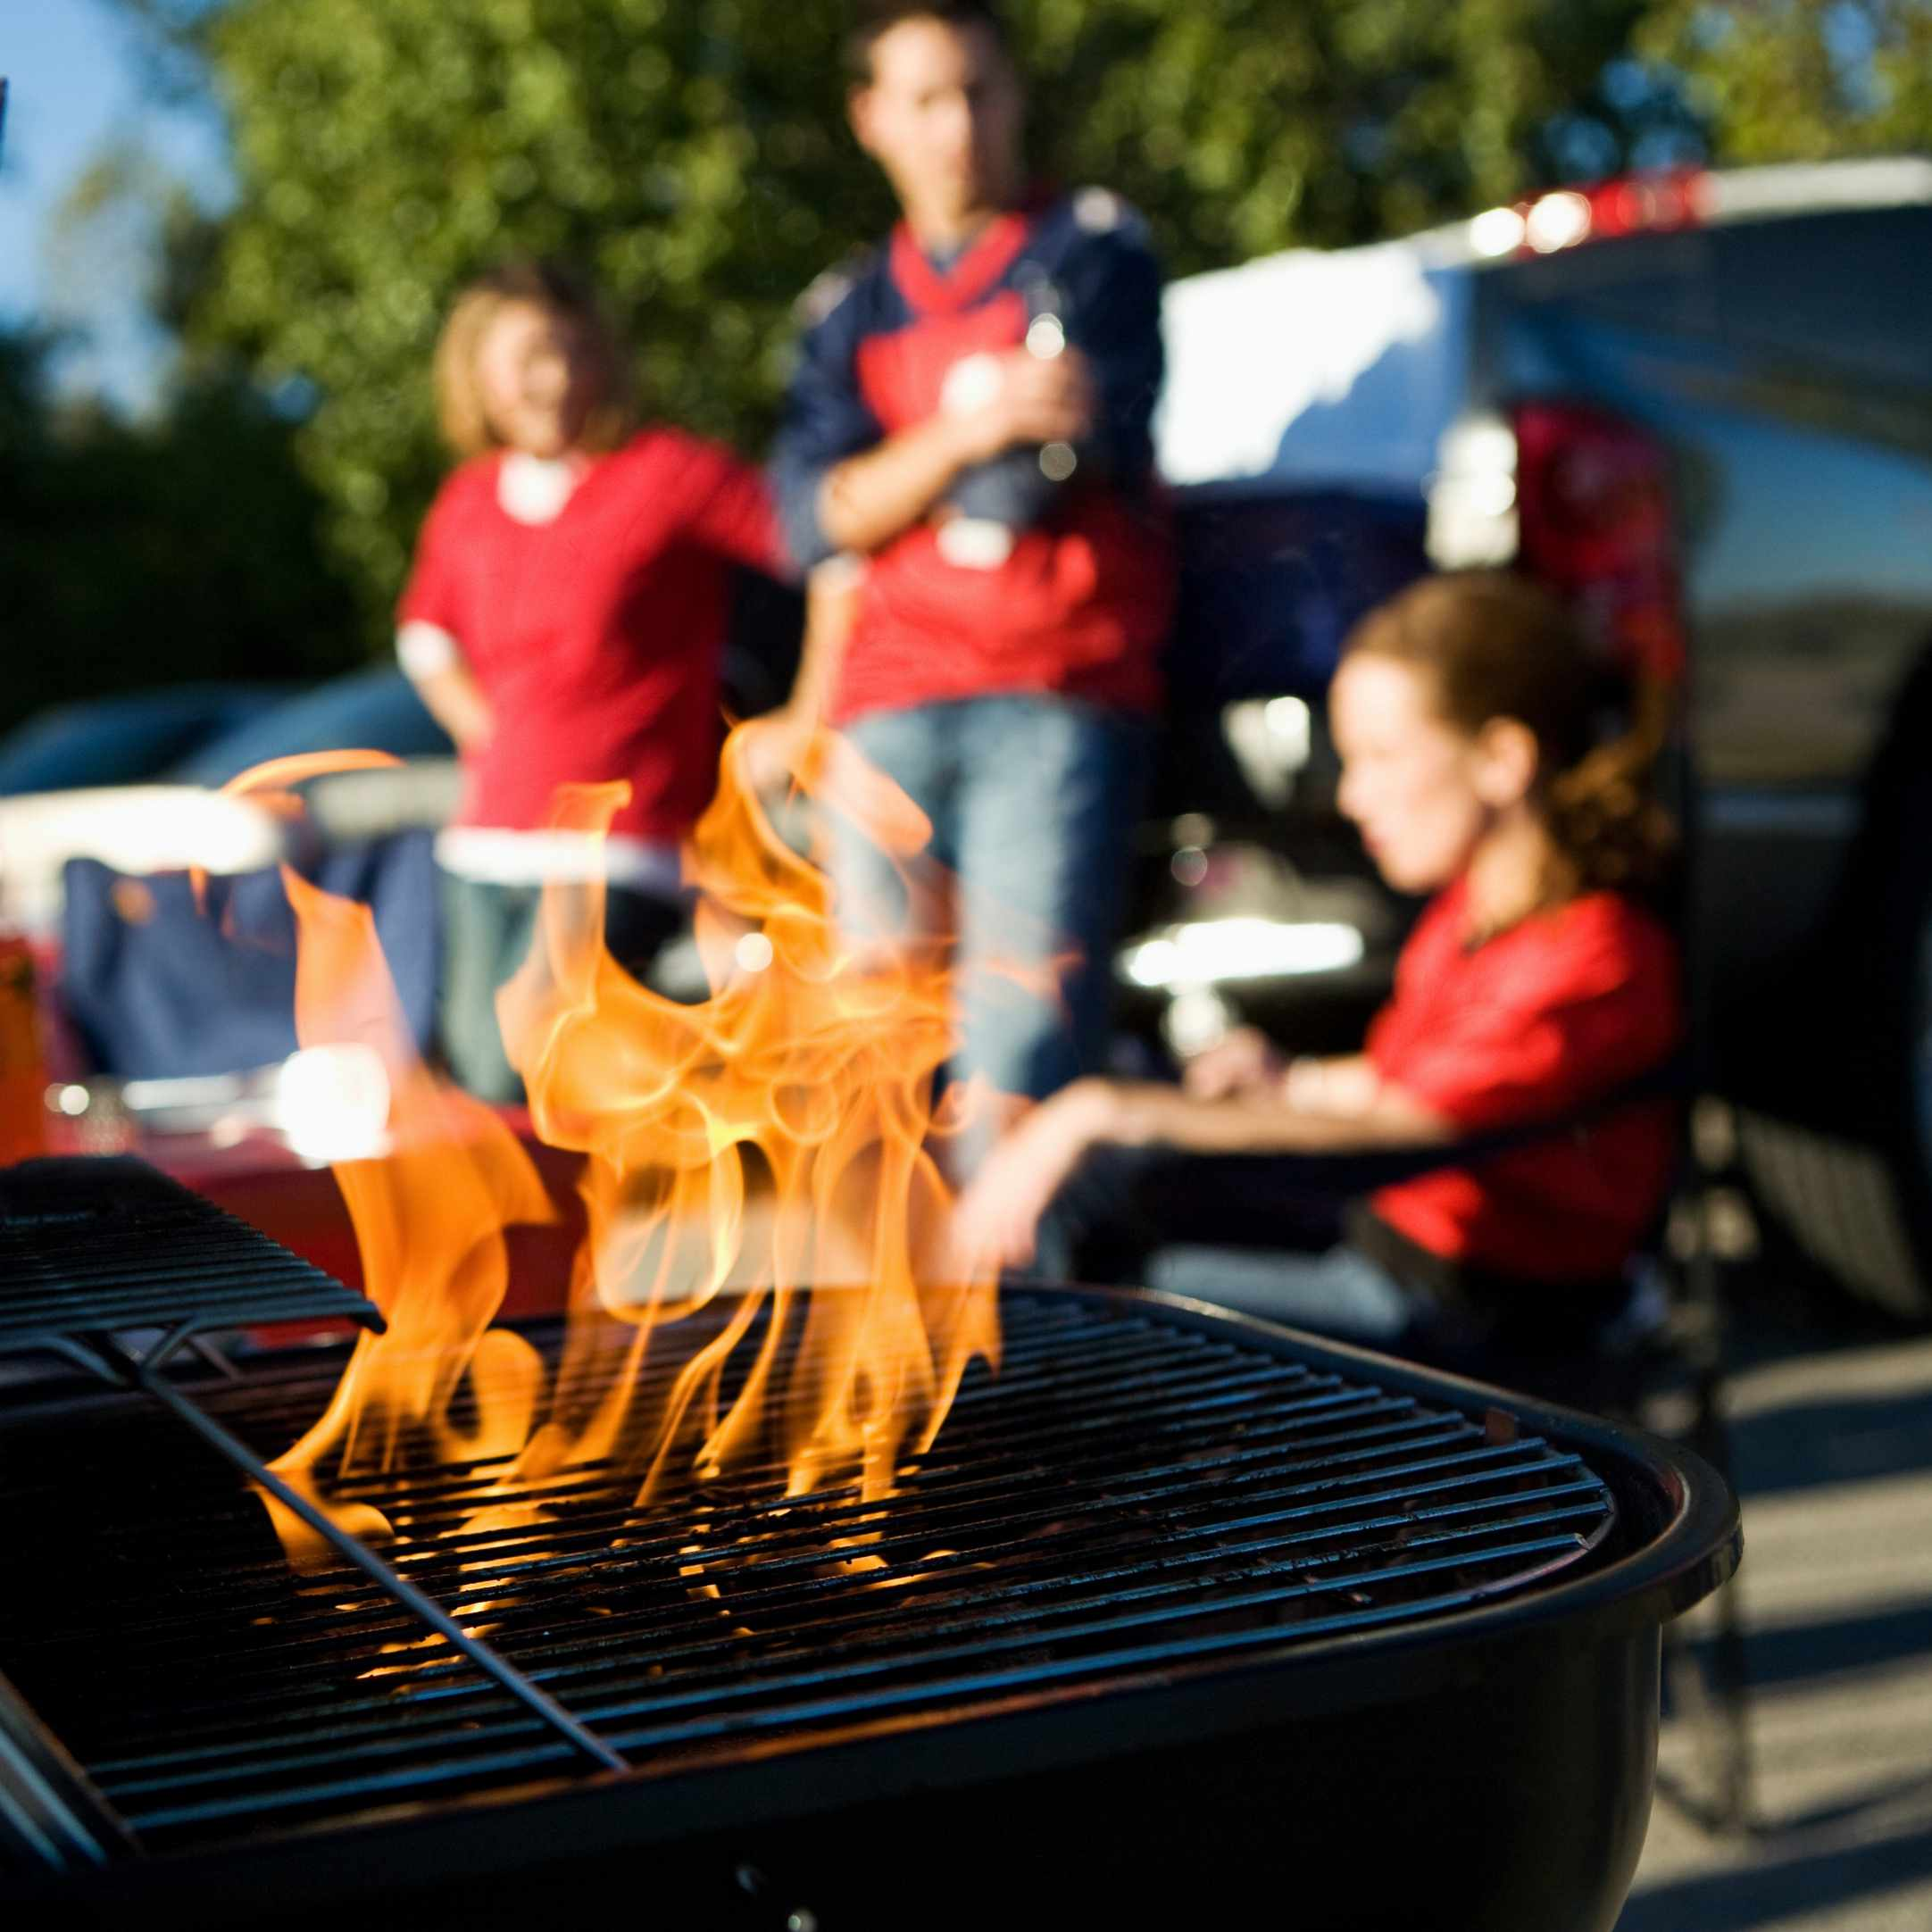 a group of friends gathered outside to cook with flames leaping up from the grill